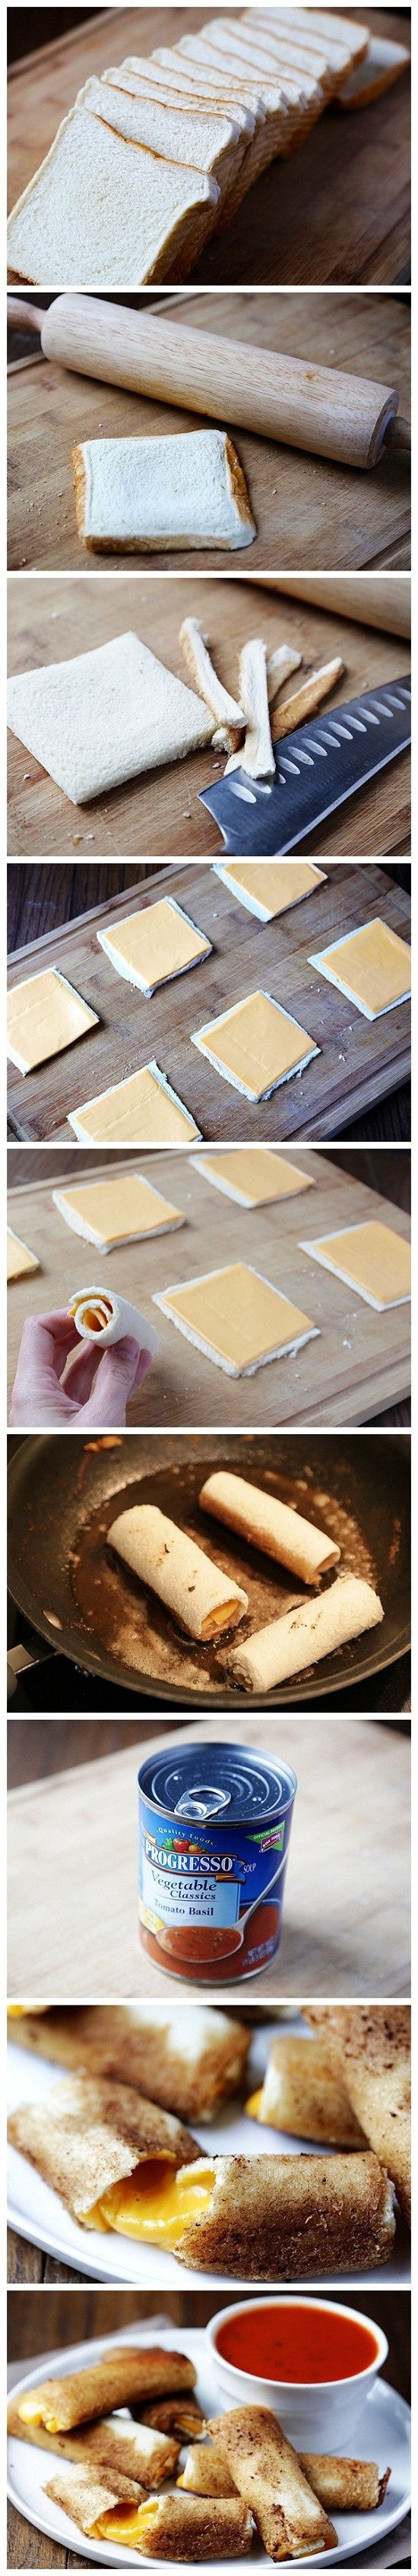 Quick and Easy Cheese Sticks  Creative Food Hacks That Will Change The Way You Cook